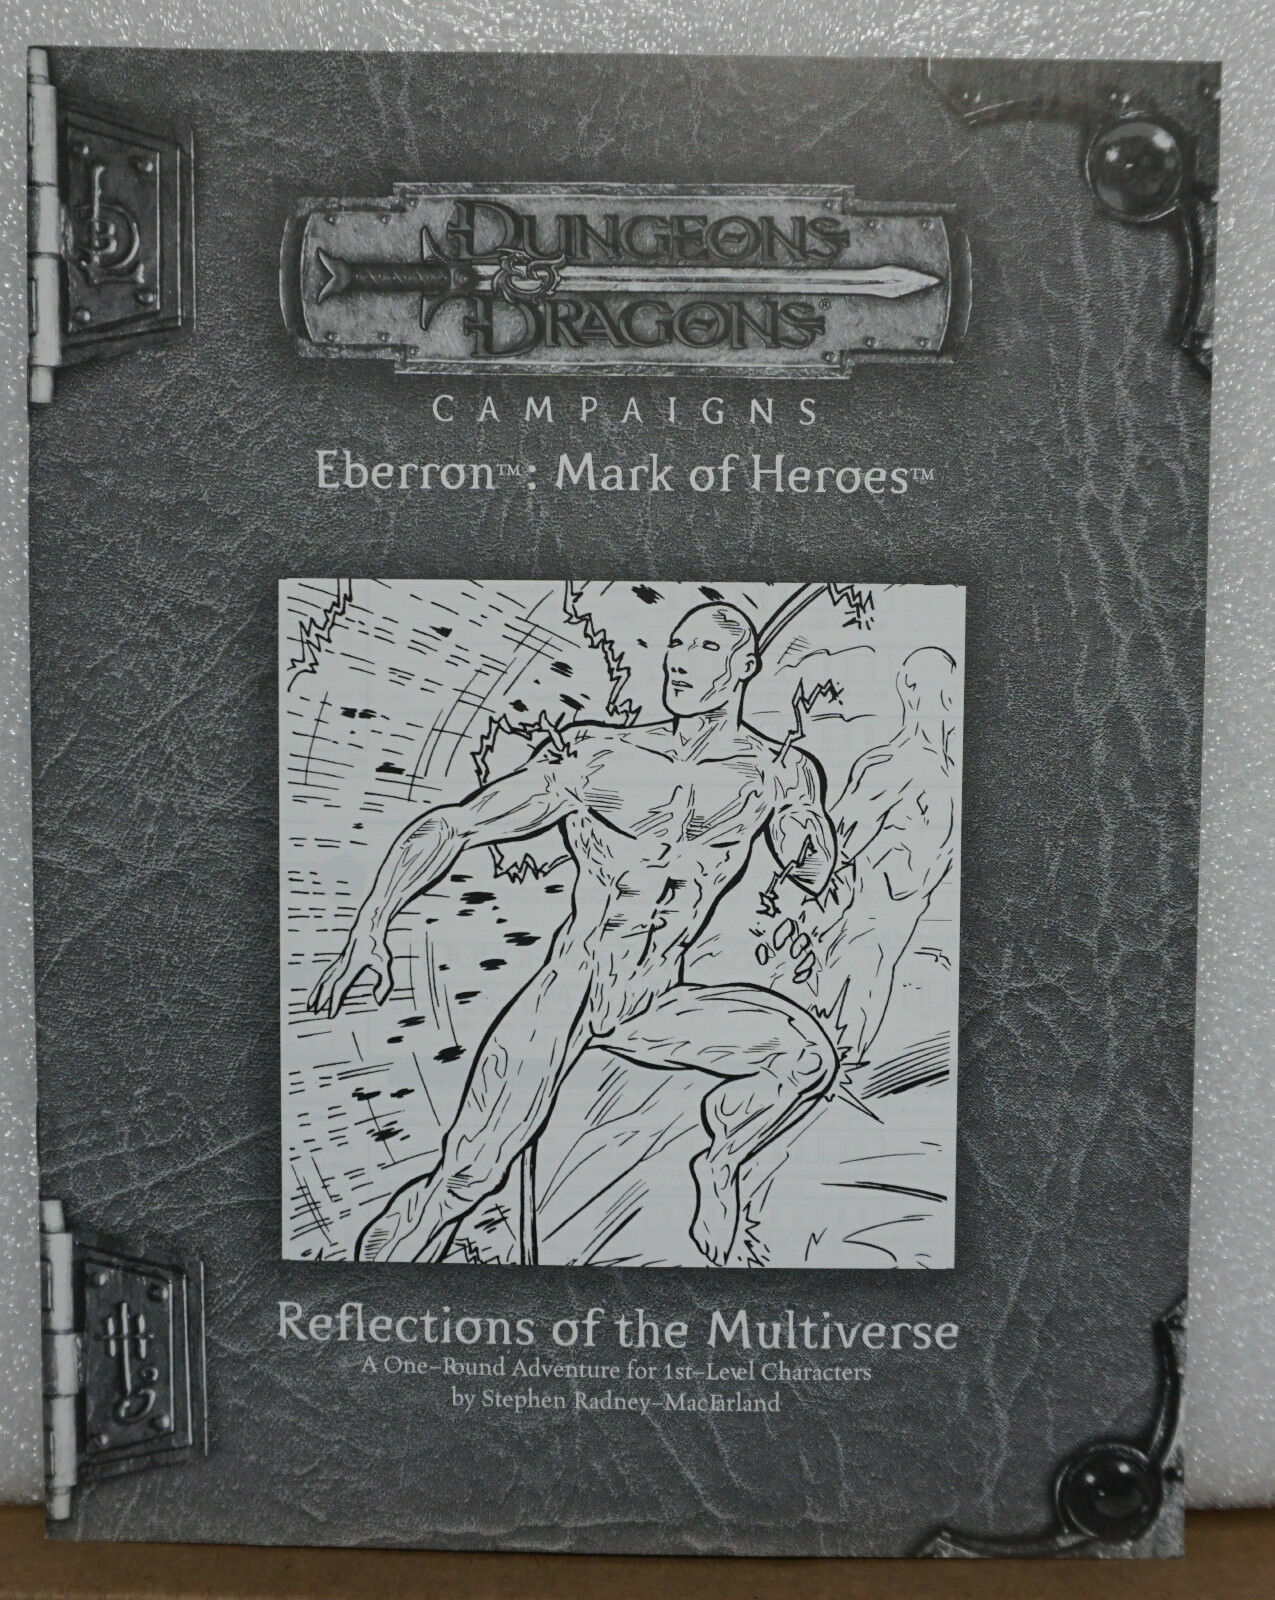 Dungeons & Dragons Campaigns Eberron Mark o Heroes Reflections of the Multiverse